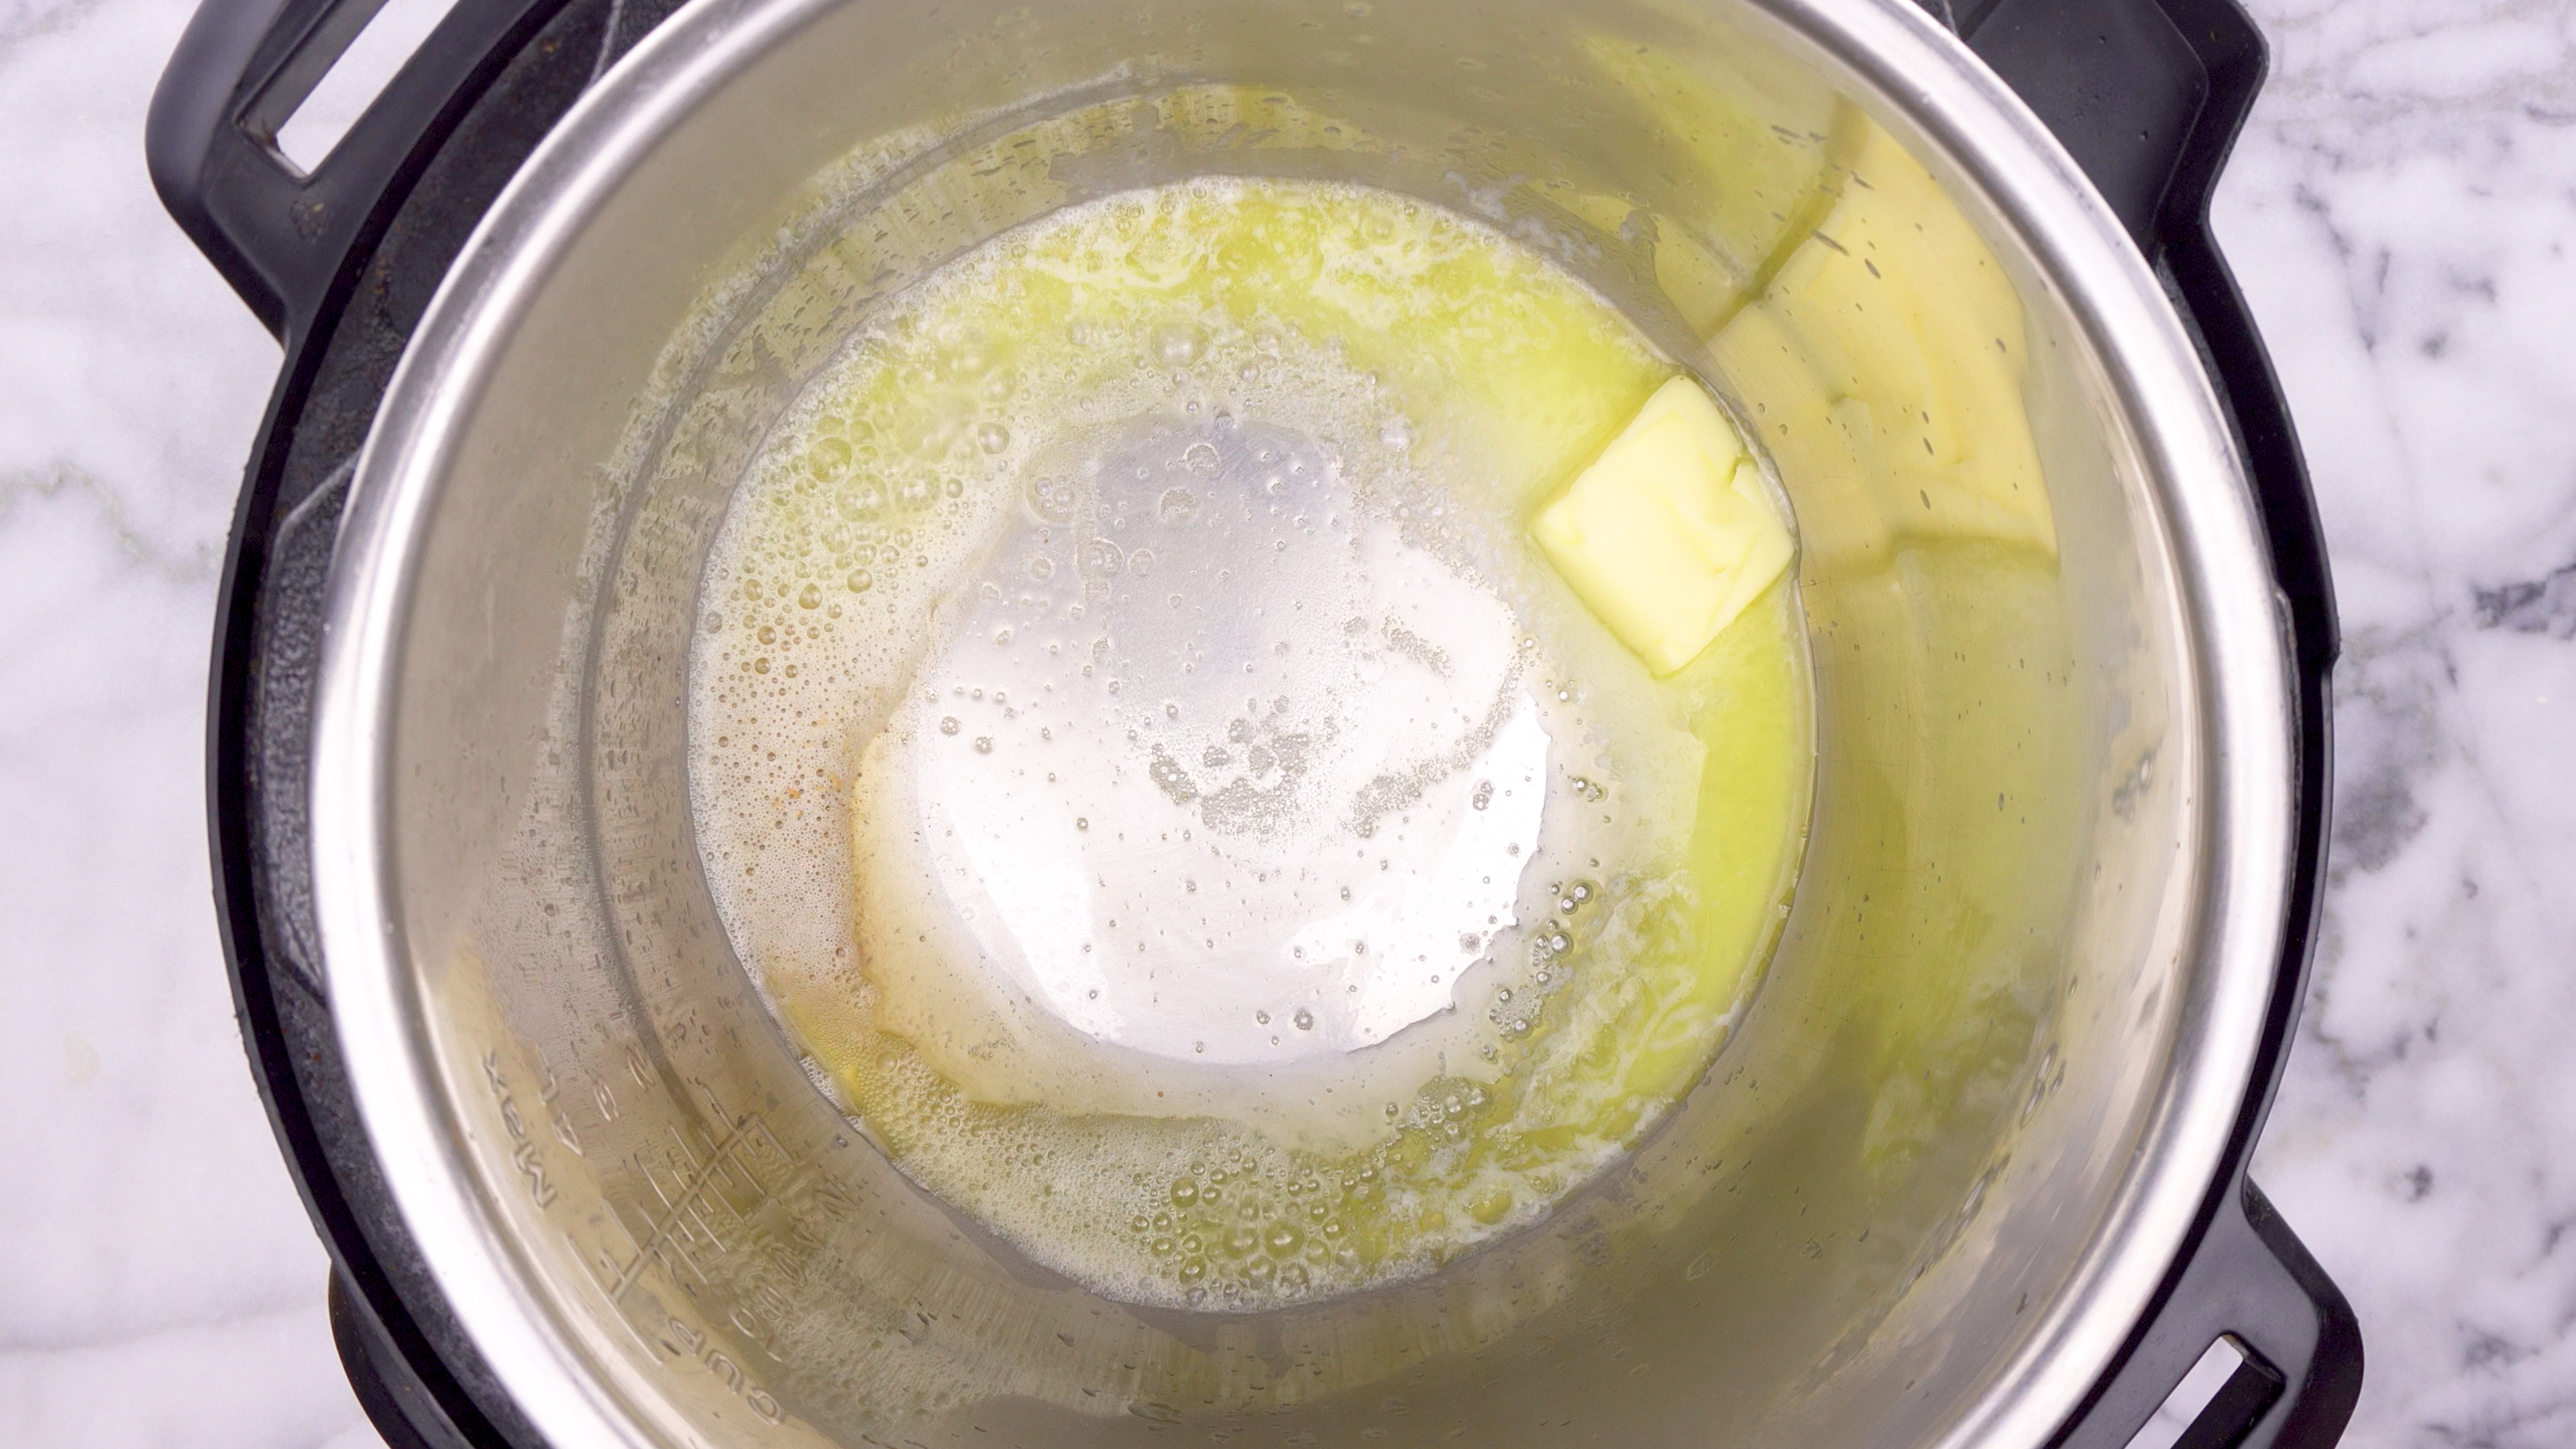 Melting butter in the Instant Pot